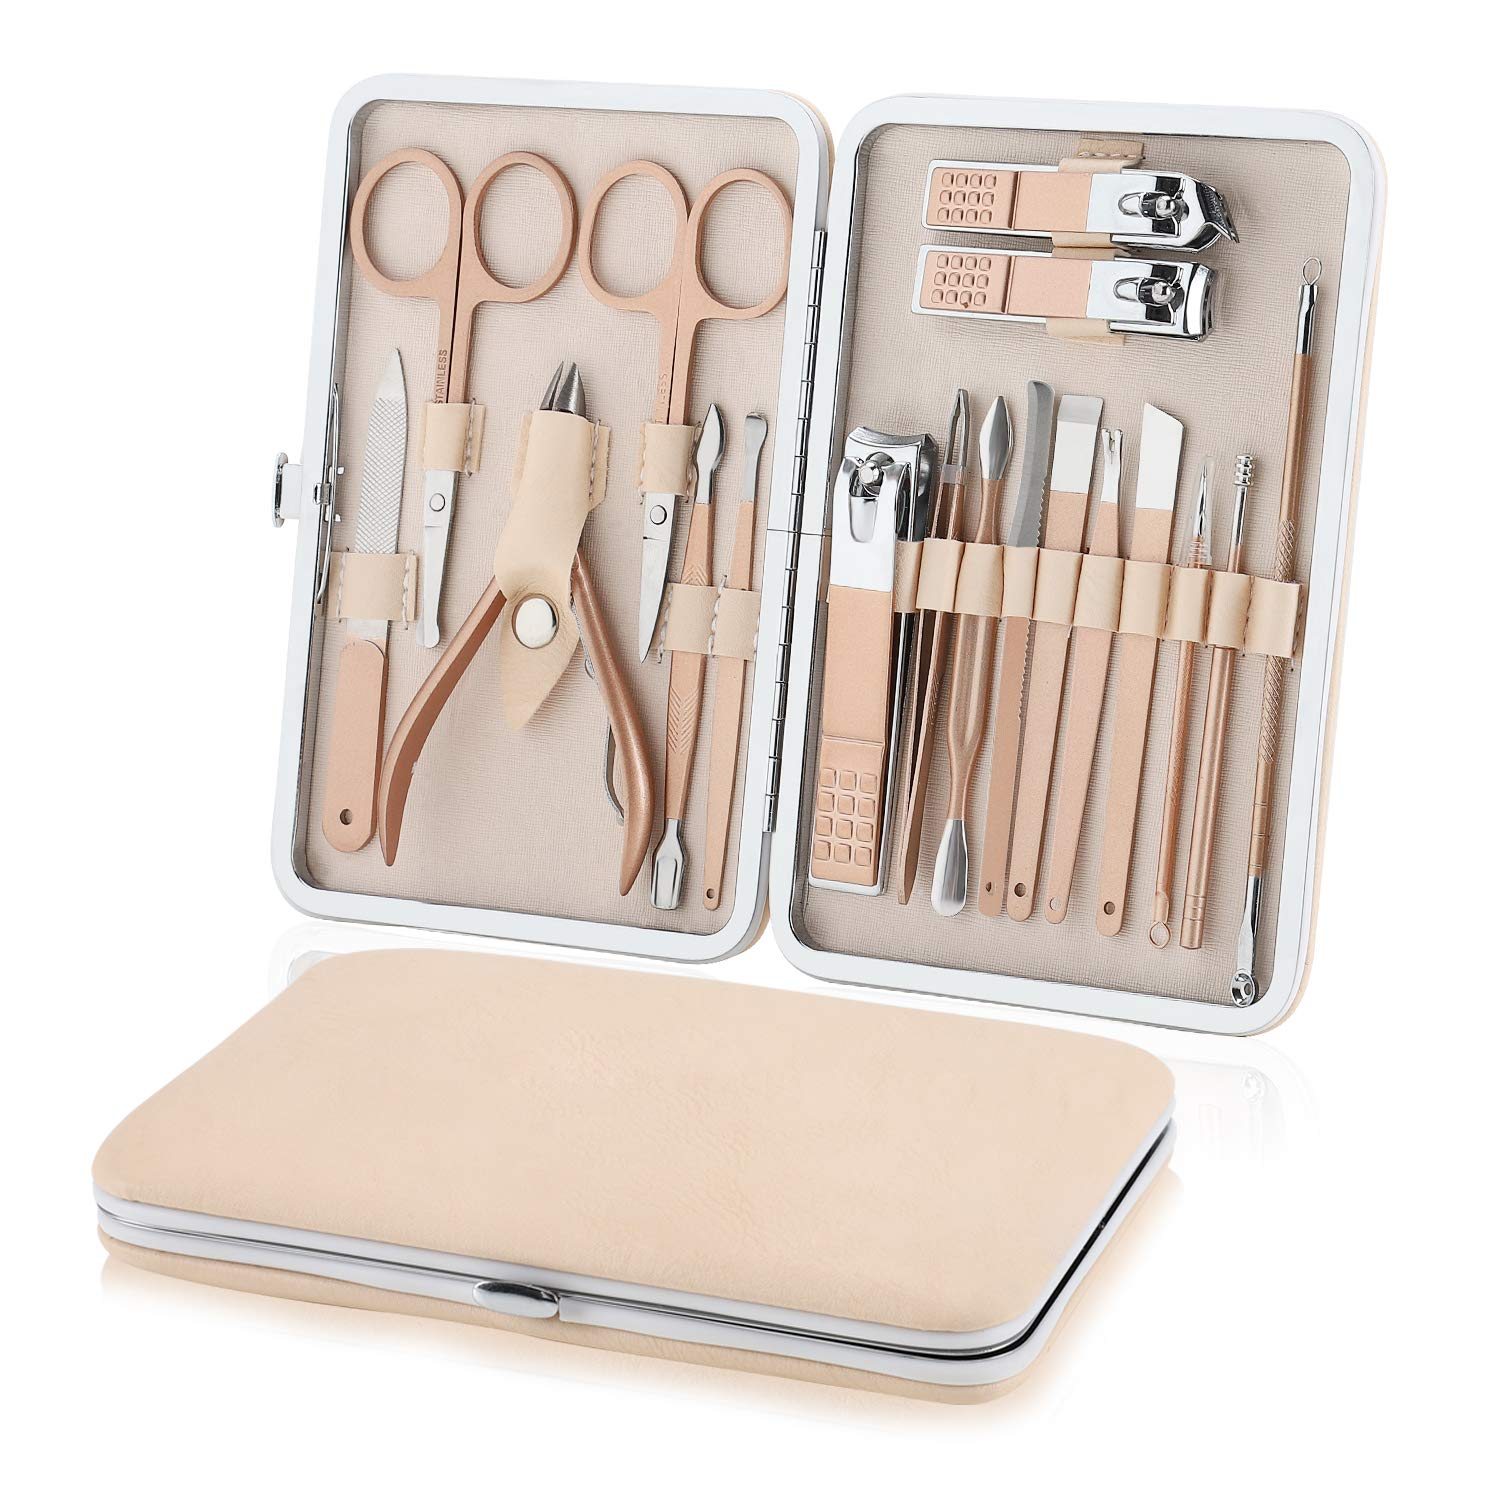 Manicure Set Nail Clippers Pedicure Kit, Professional Rose Gold Stainless Steel Personal Grooming Kit, 18 in 1 Nail Care Tools with Luxurious Leather Travel Case for men and women : Beauty